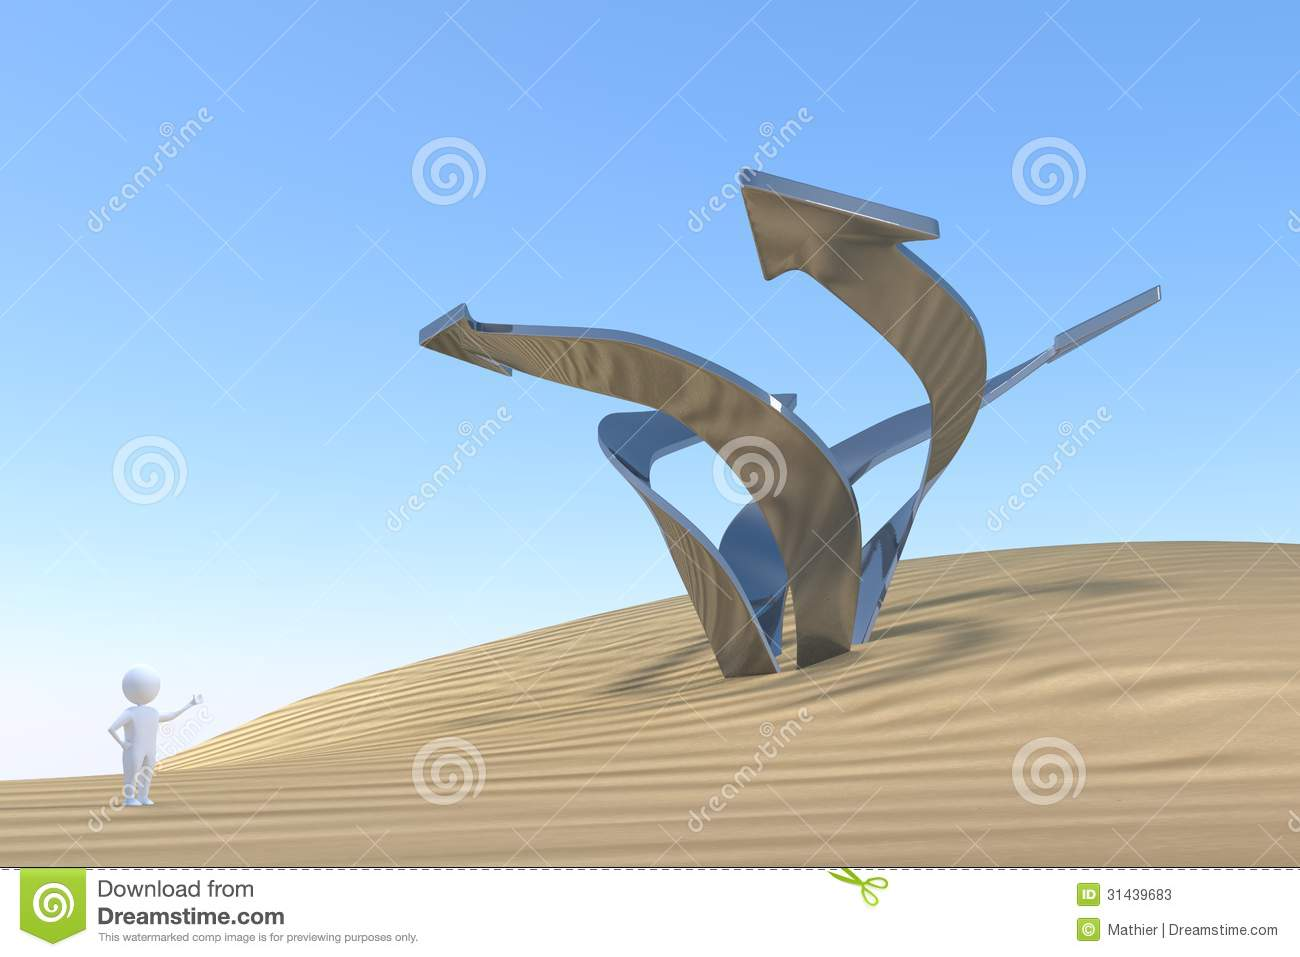 3D Man - Imagination Stock Photos - Image: 31439683